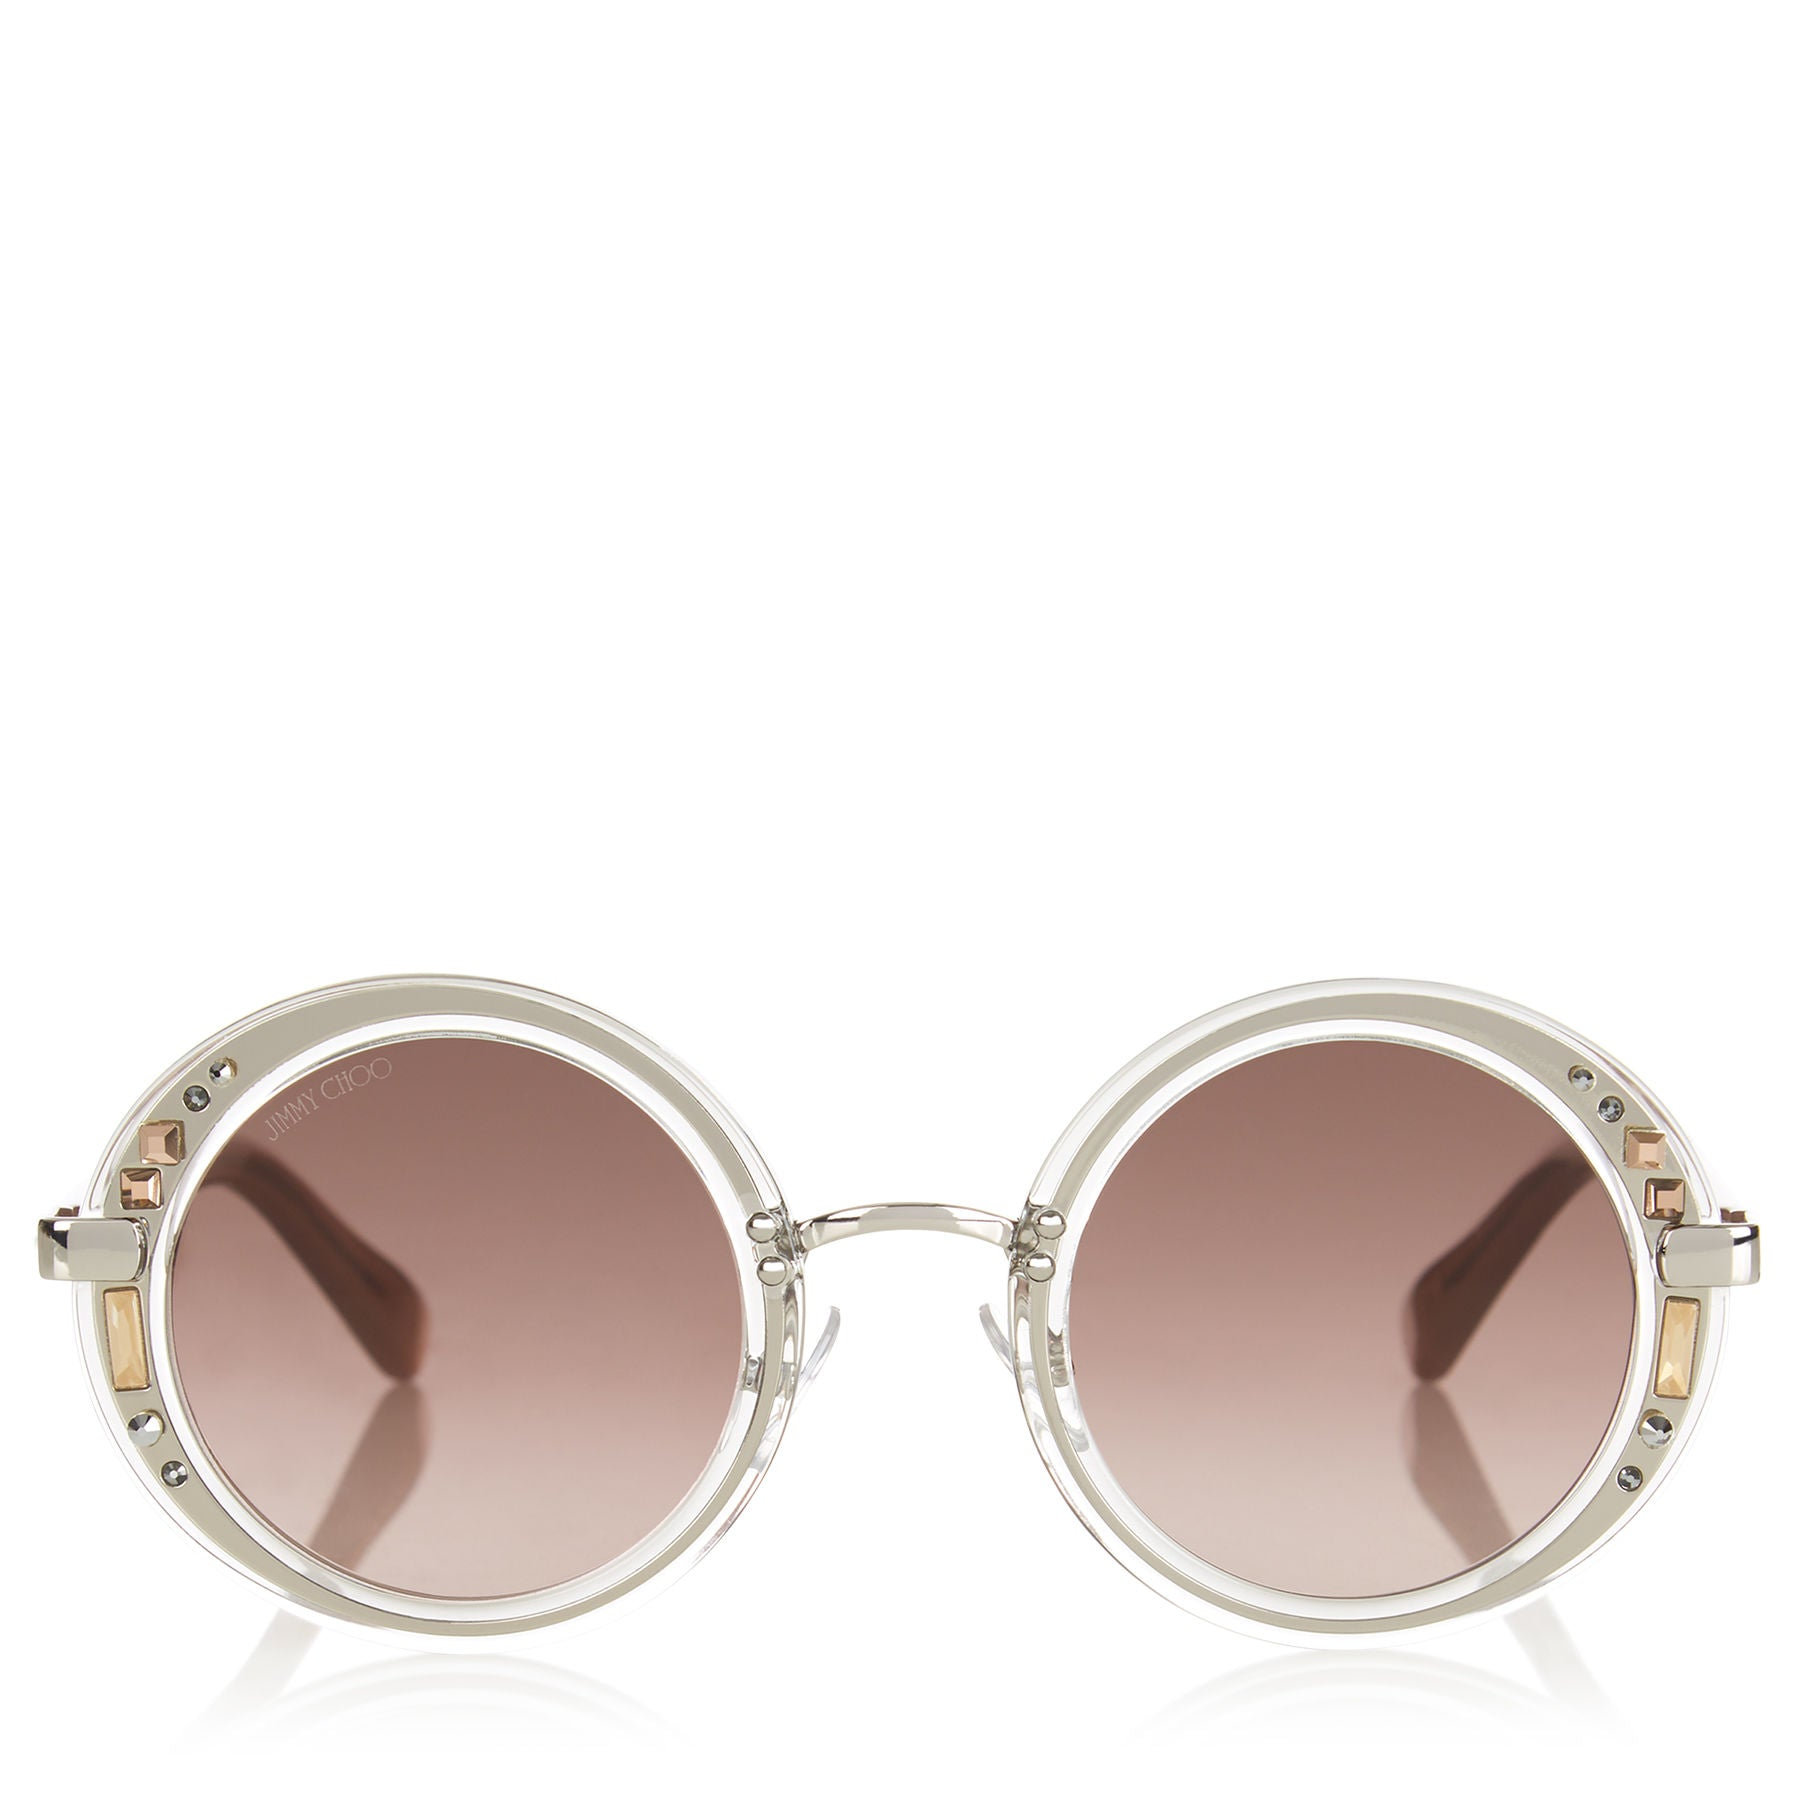 JIMMY CHOO Gem Transparent Round Framed Sunglasses with Swarovski Crystals ITEM NO. GEMS48E16R